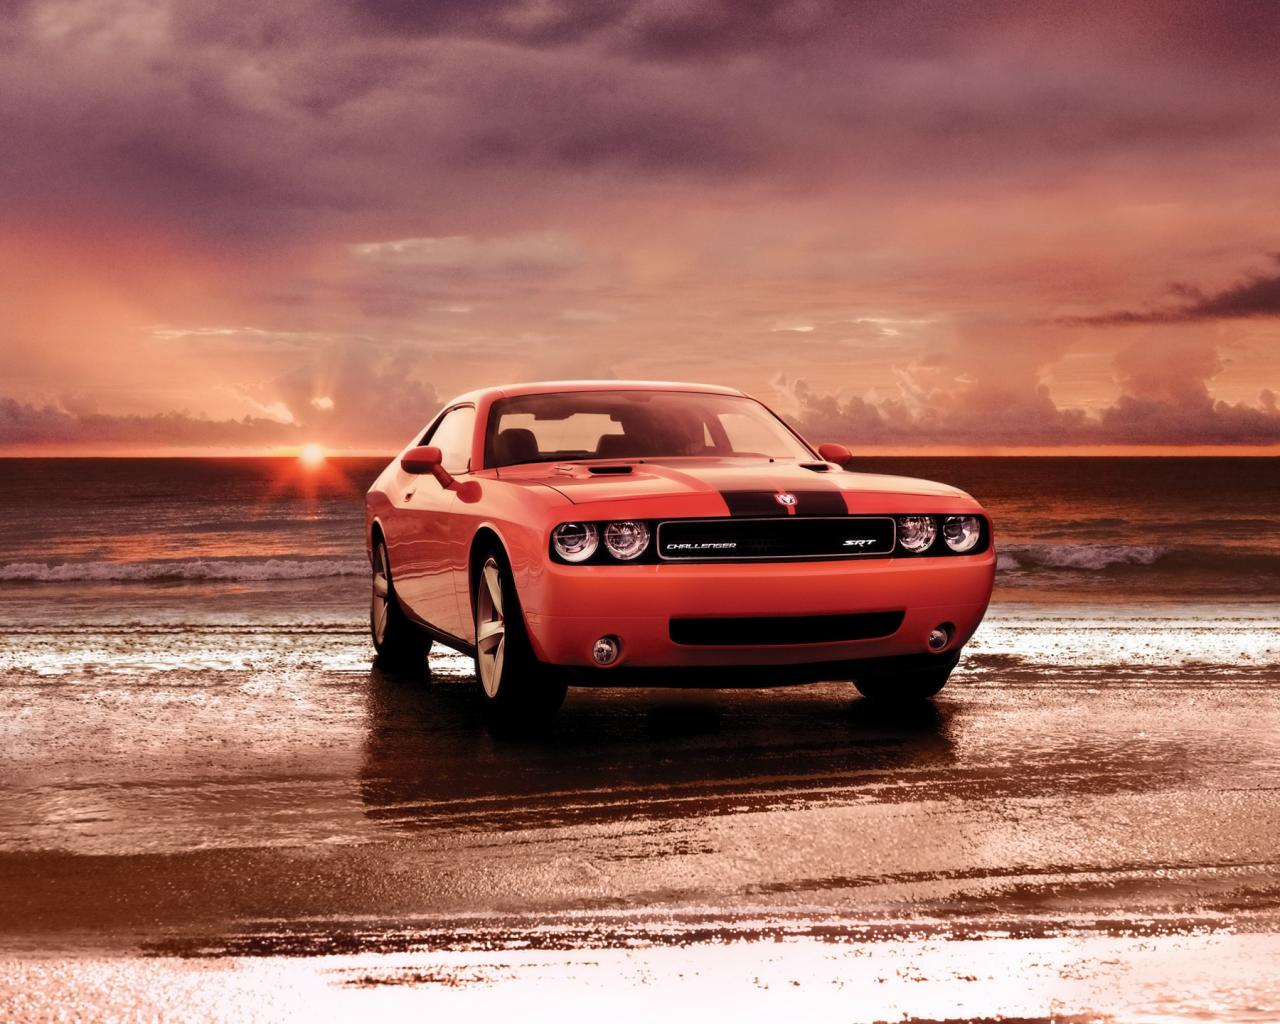 2008 Dodge Challenger Srt8 Front Shore 1280x1024